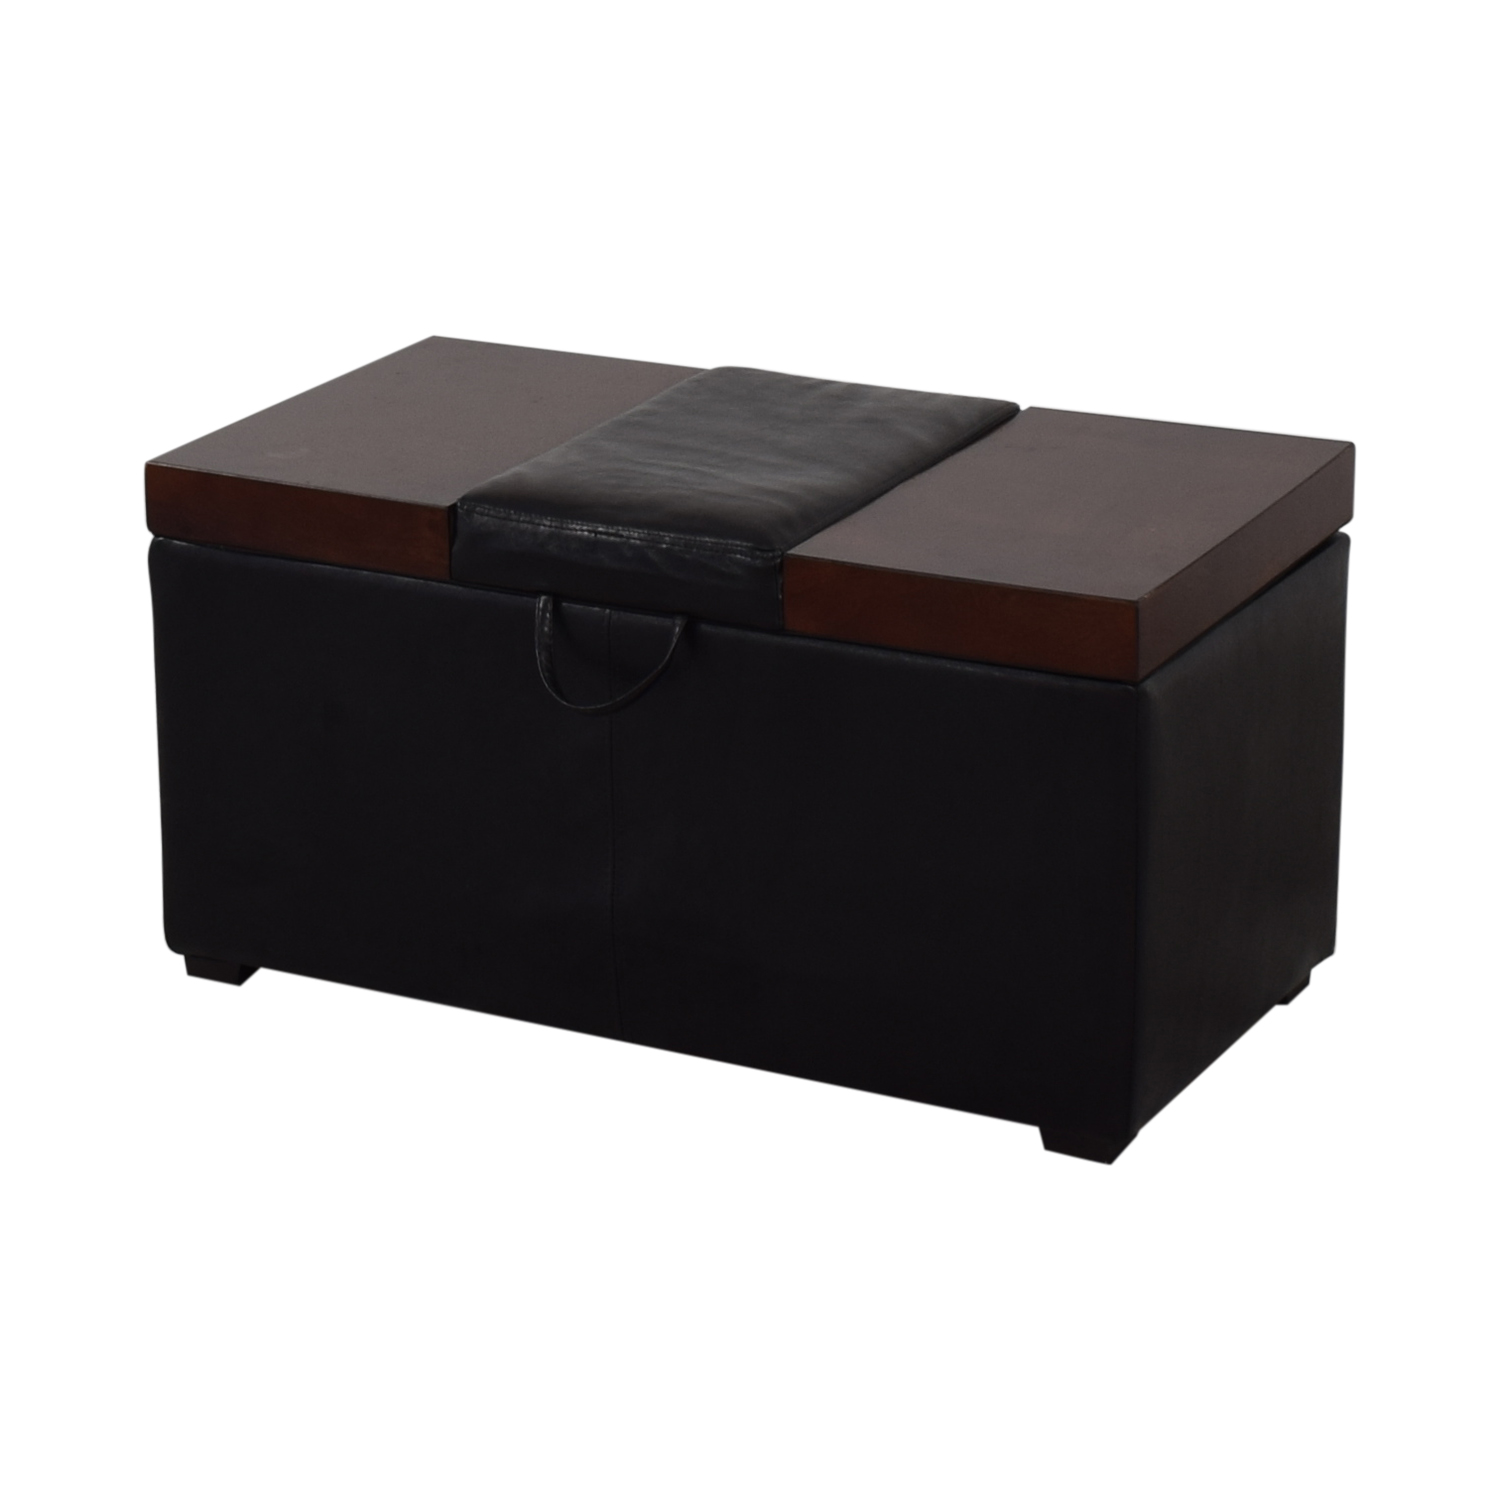 Belham Living Madison Lift Top Upholstered Storage Ottoman / Chairs